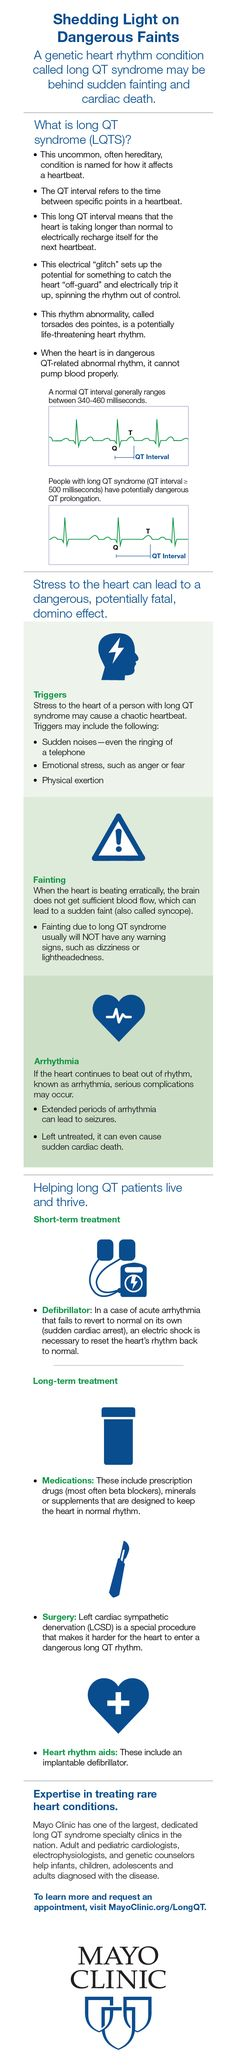 A genetic heart rhythm condition called long QT syndrome may be behind sudden fainting and cardiac death.